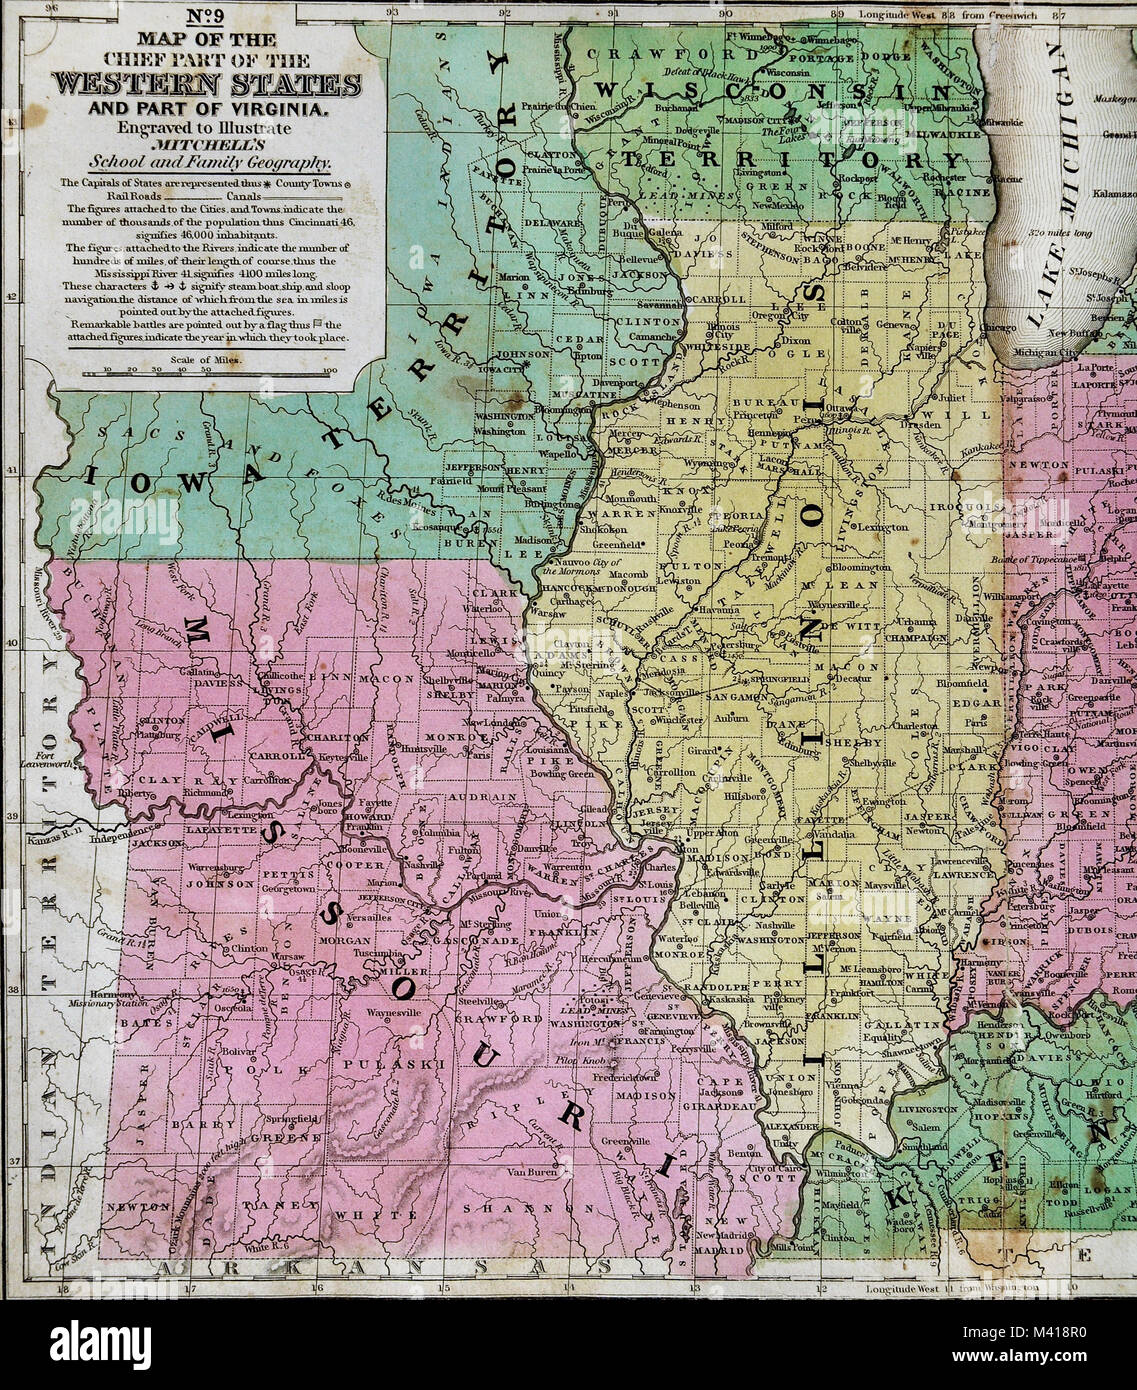 1839 Mitc Map - Upper Midwest States - Missouri Illinois ... Border States Map Ohio on ohio tennessee map, ohio south map, pennsylvania bordering canada map, ohio union map, ohio civil war map, ohio underground railroad map, ohio ohio map, ohio bordering states,